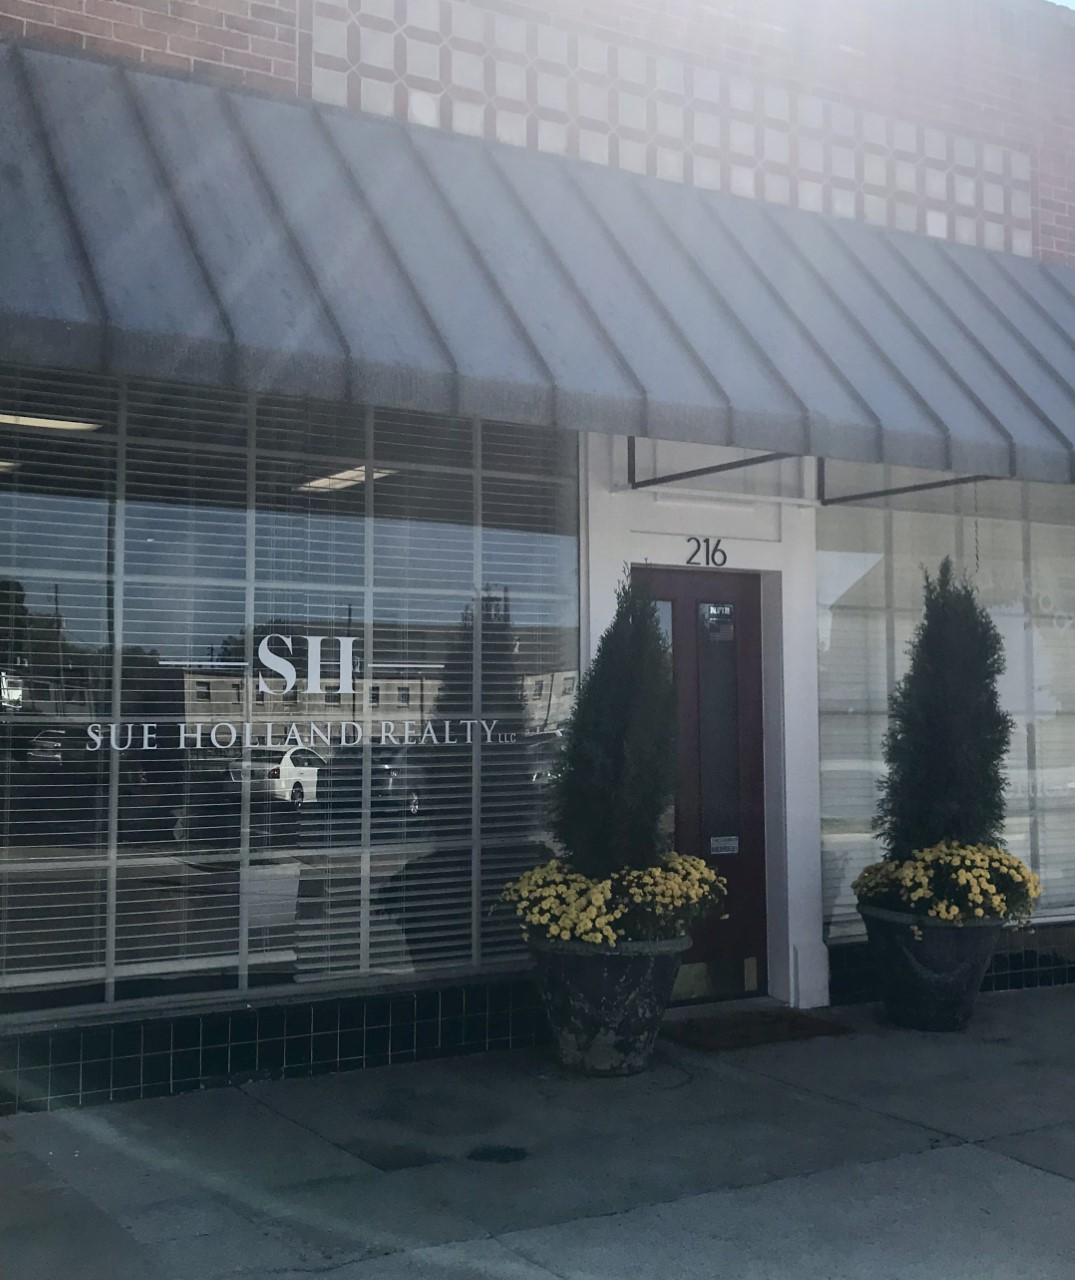 Sue Holland Realty Office